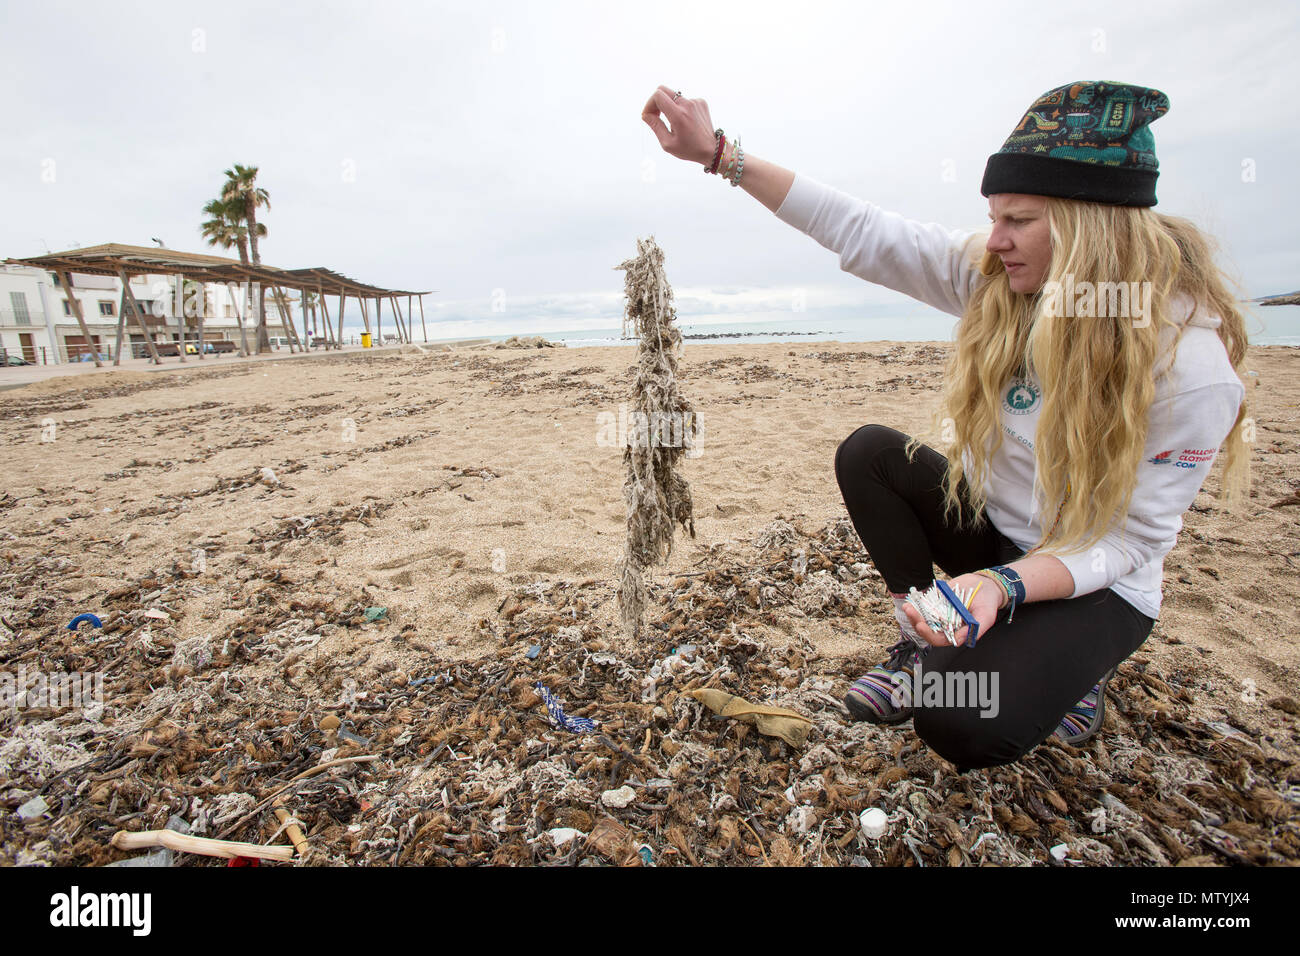 20 March 2018, Spain, Mallorca: Alice Mason from the environment organisation 'Ondine Baleares' examining rubbish on the beach in the Palma bay which has got mixed up with Neptune grass and sanitary products. Sewage works in Palma quickly become overburdened when it rains and raw sewage ends up flowing directly into the sea. The rubbish then lands on the beaches and mixes with the Neptune grass in the sand. Photo: Bodo Marks/dpa Stock Photo